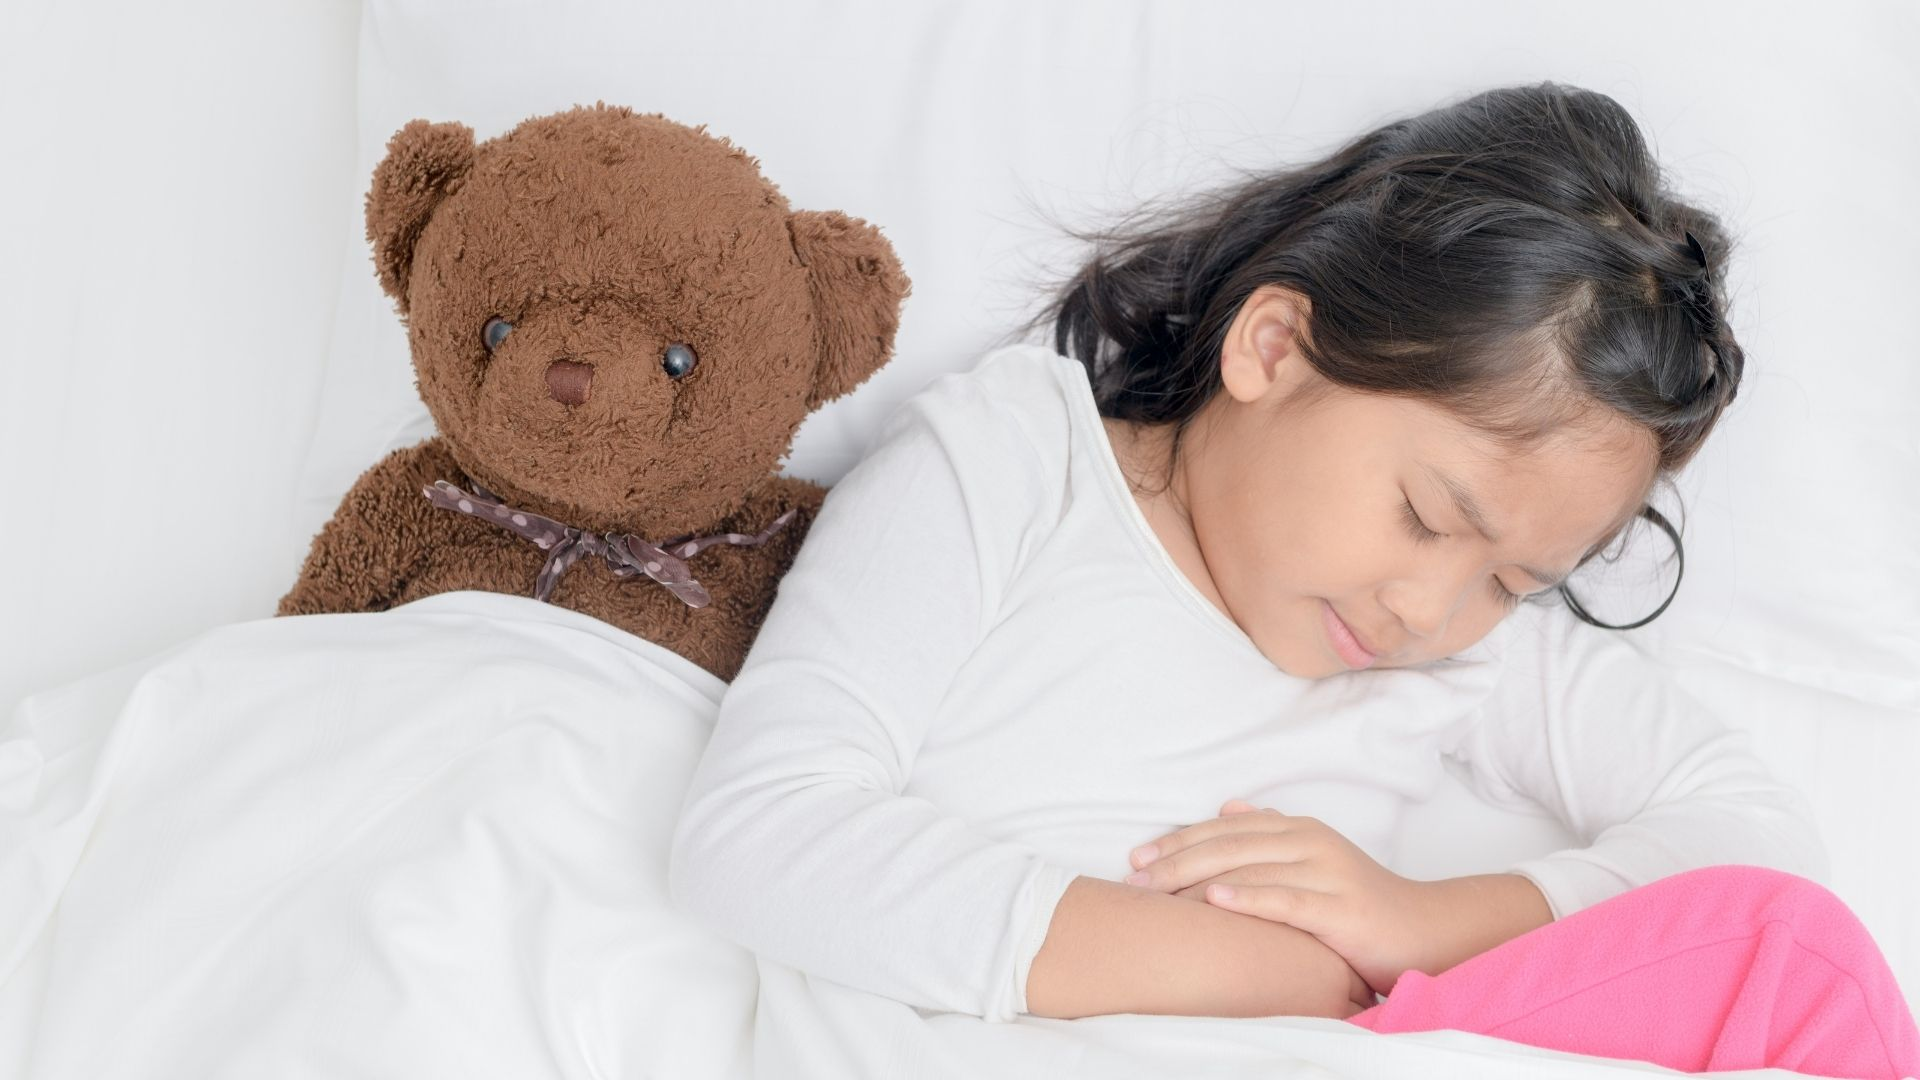 child stomachpain - What to do when a child gets diarrhea